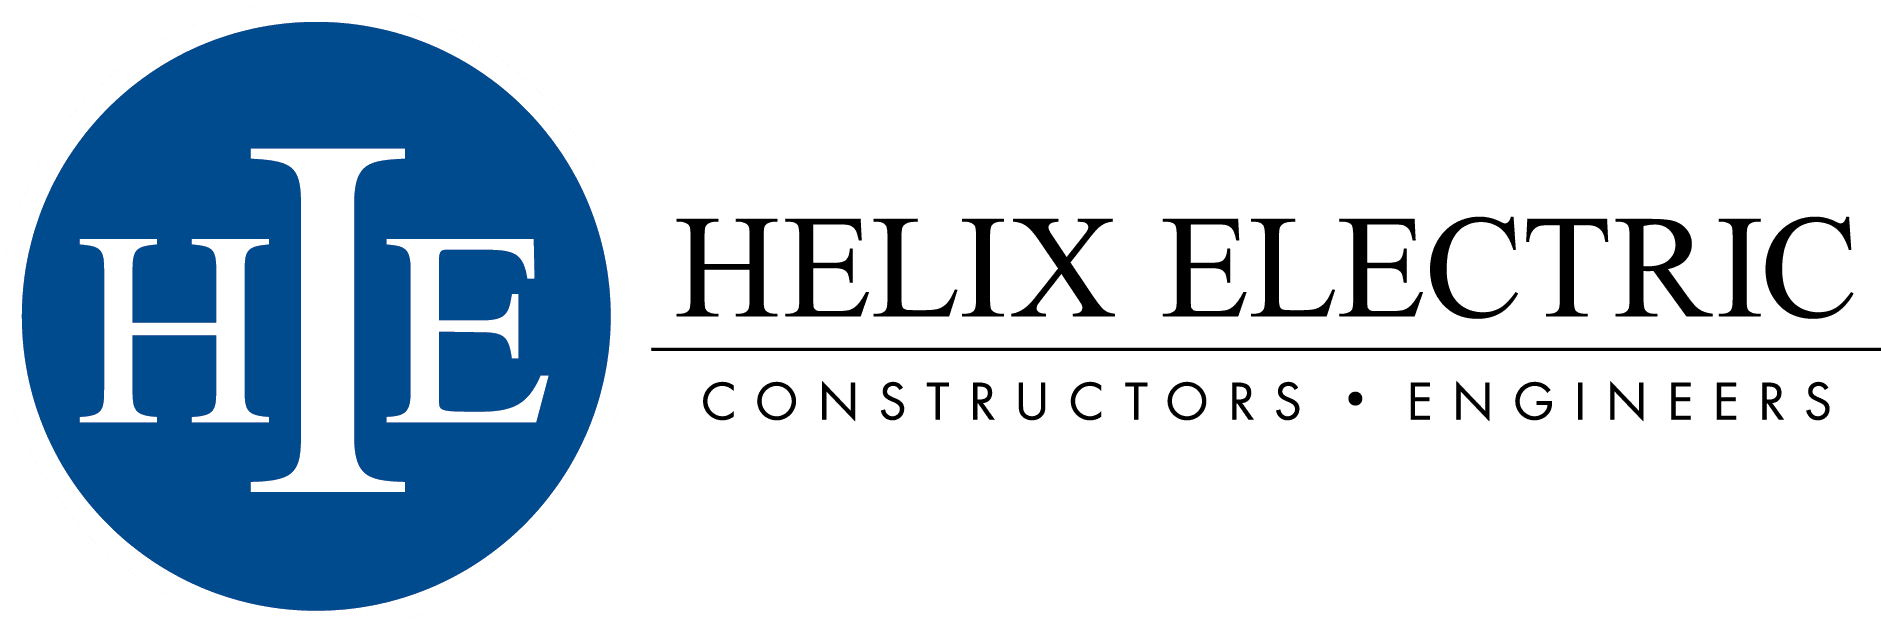 Helix Electric Logo Opens in new window